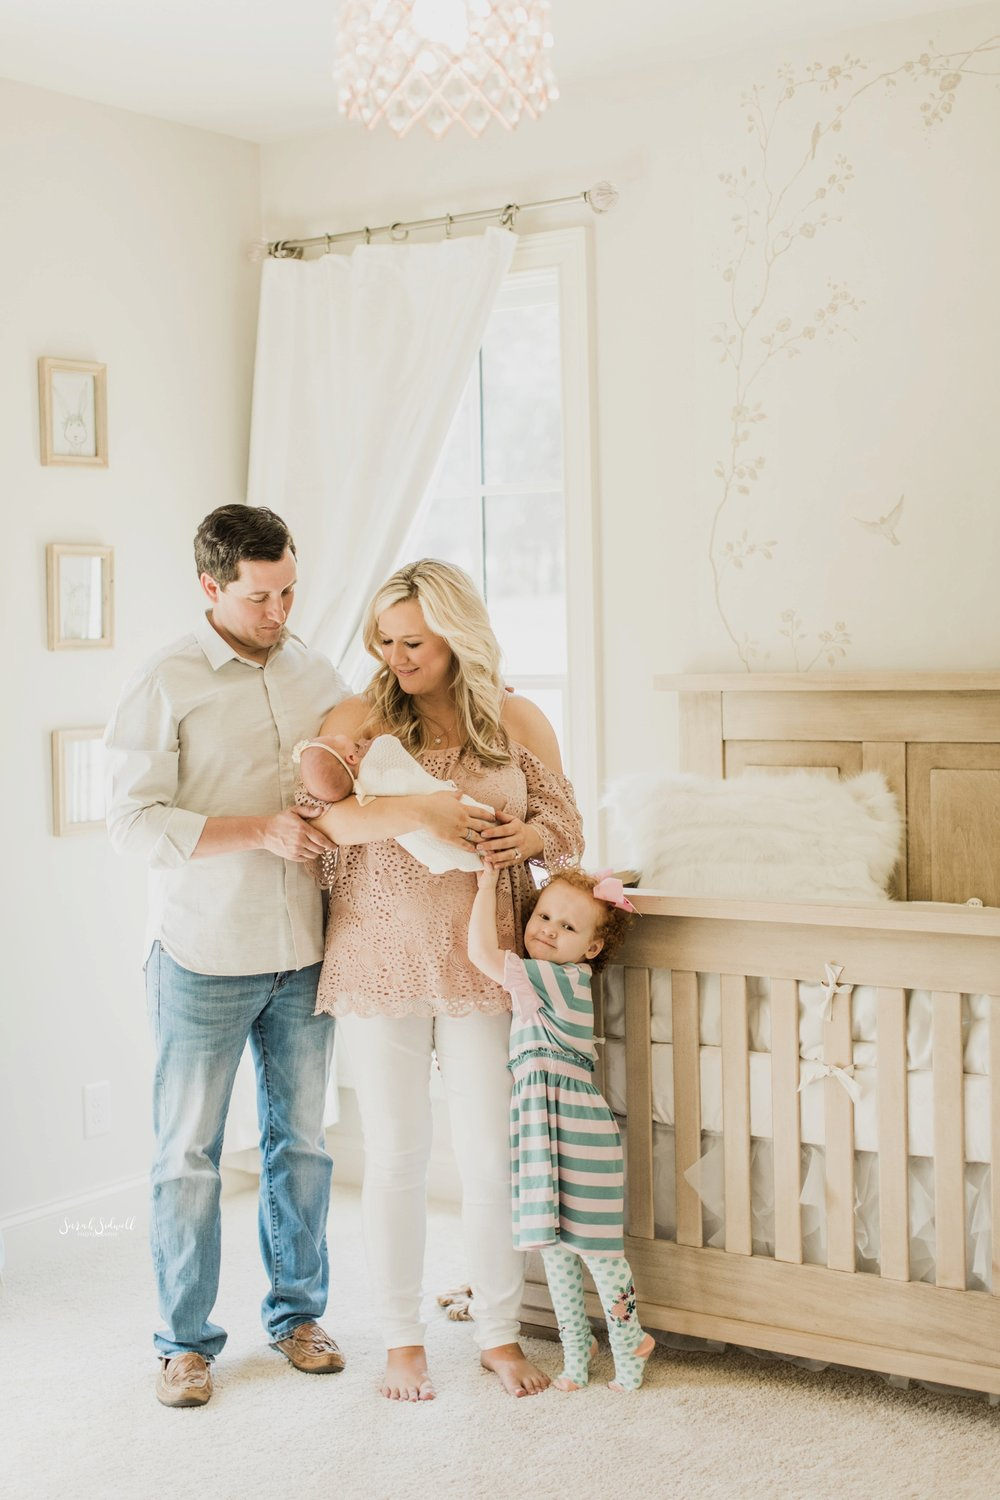 A family is standing in their baby's nursery | Home Newborn Session